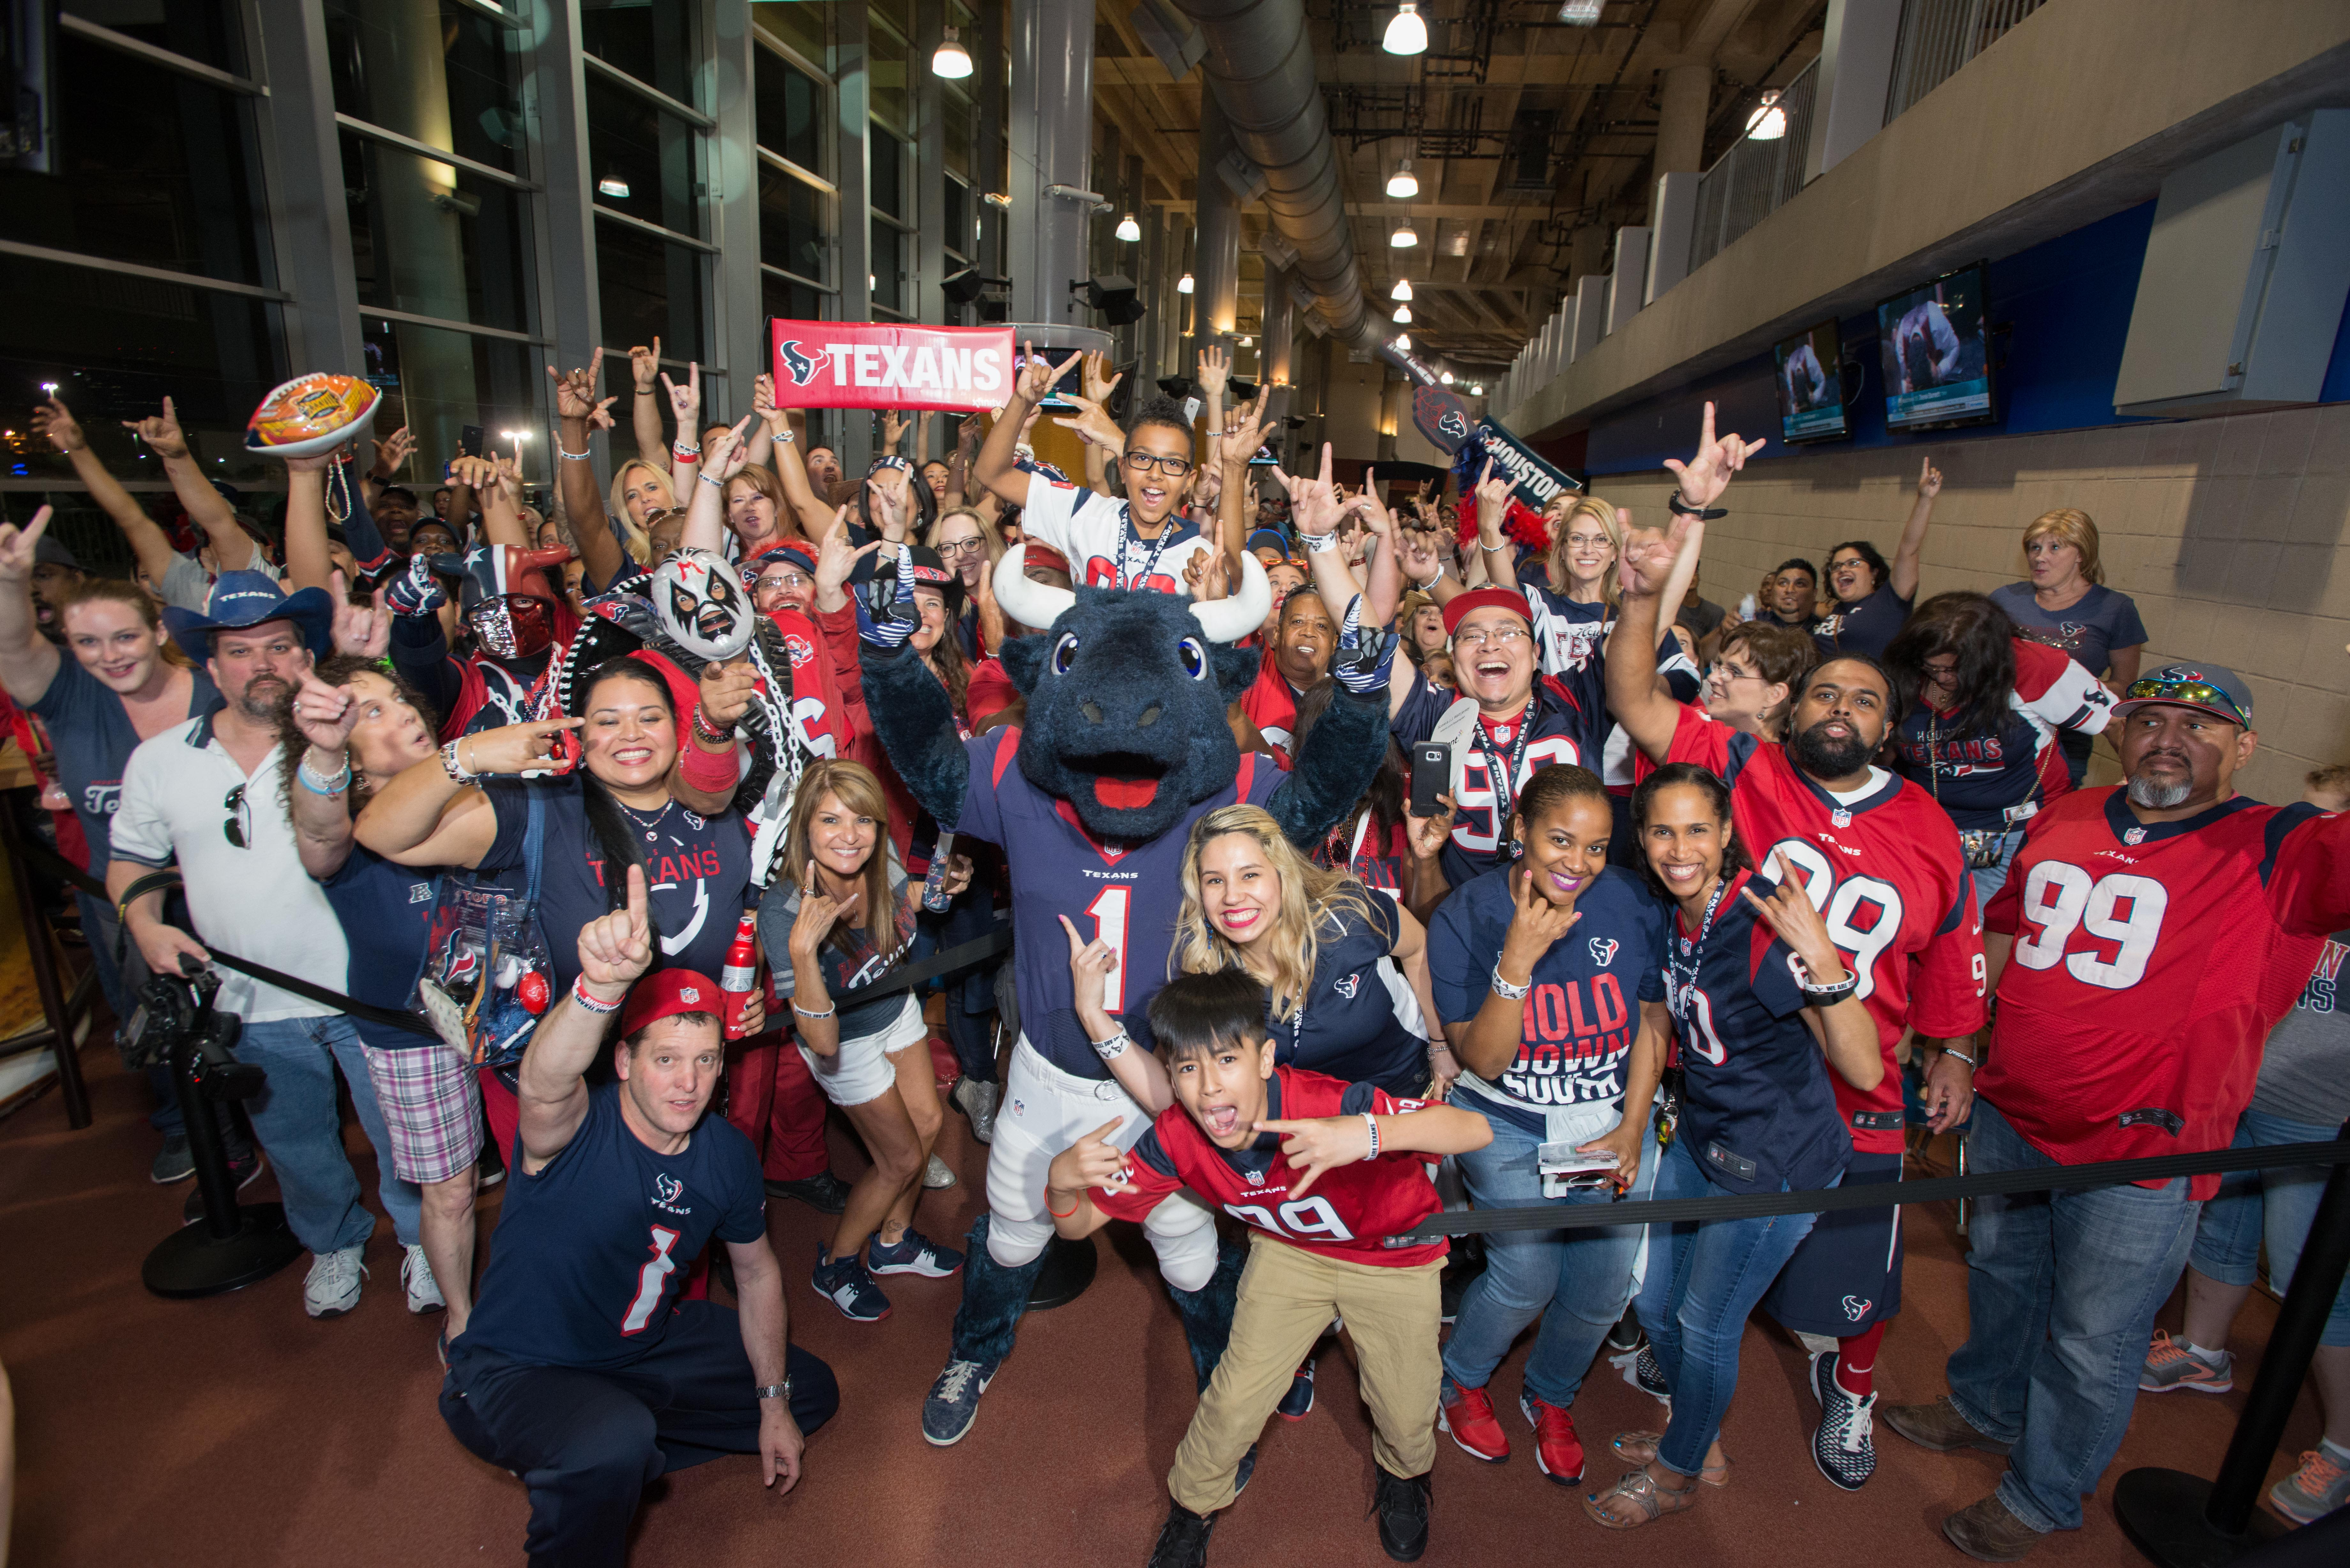 An image from the April 27, 2017 Houston Texans Draft Party at NRG Stadium in Houston, TX.